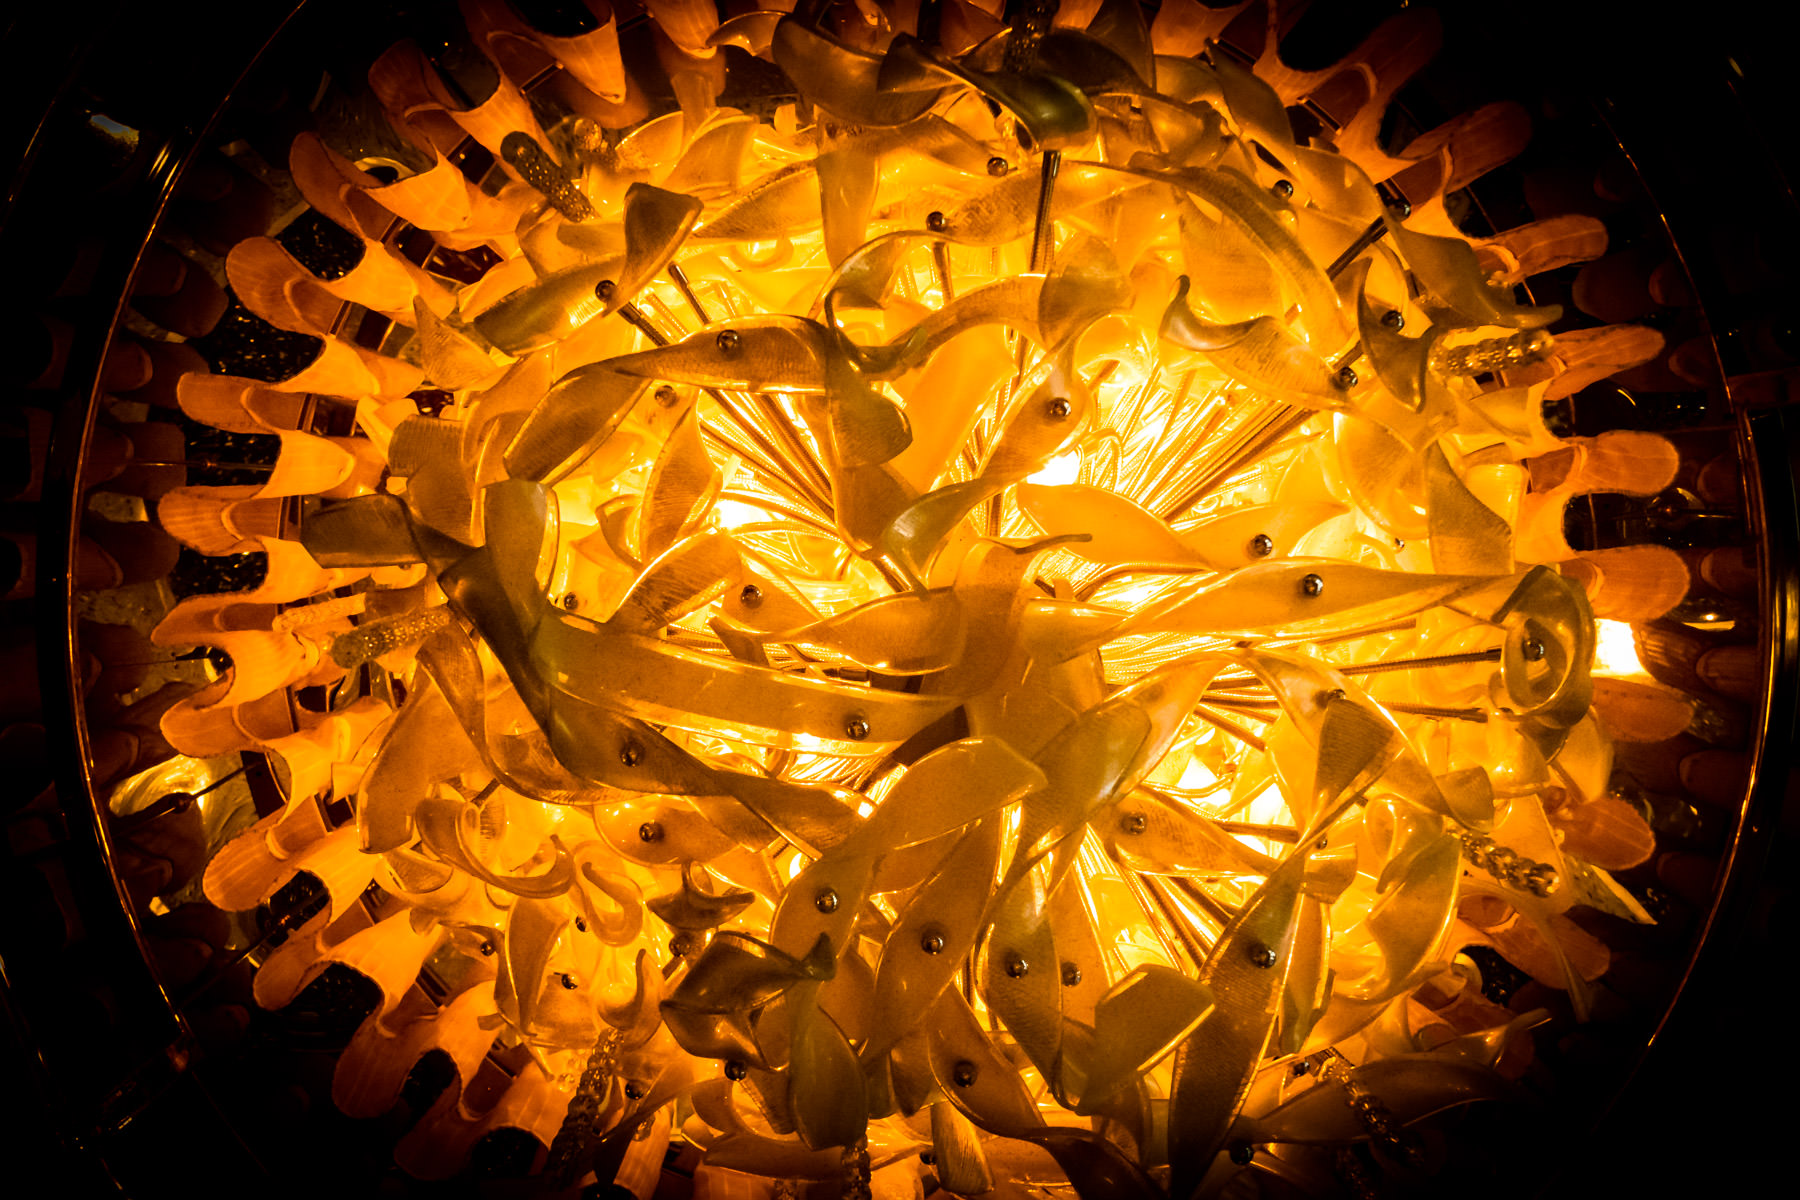 An elaborate light fixture in the lobby of the Cosmopolitan of Las Vegas.